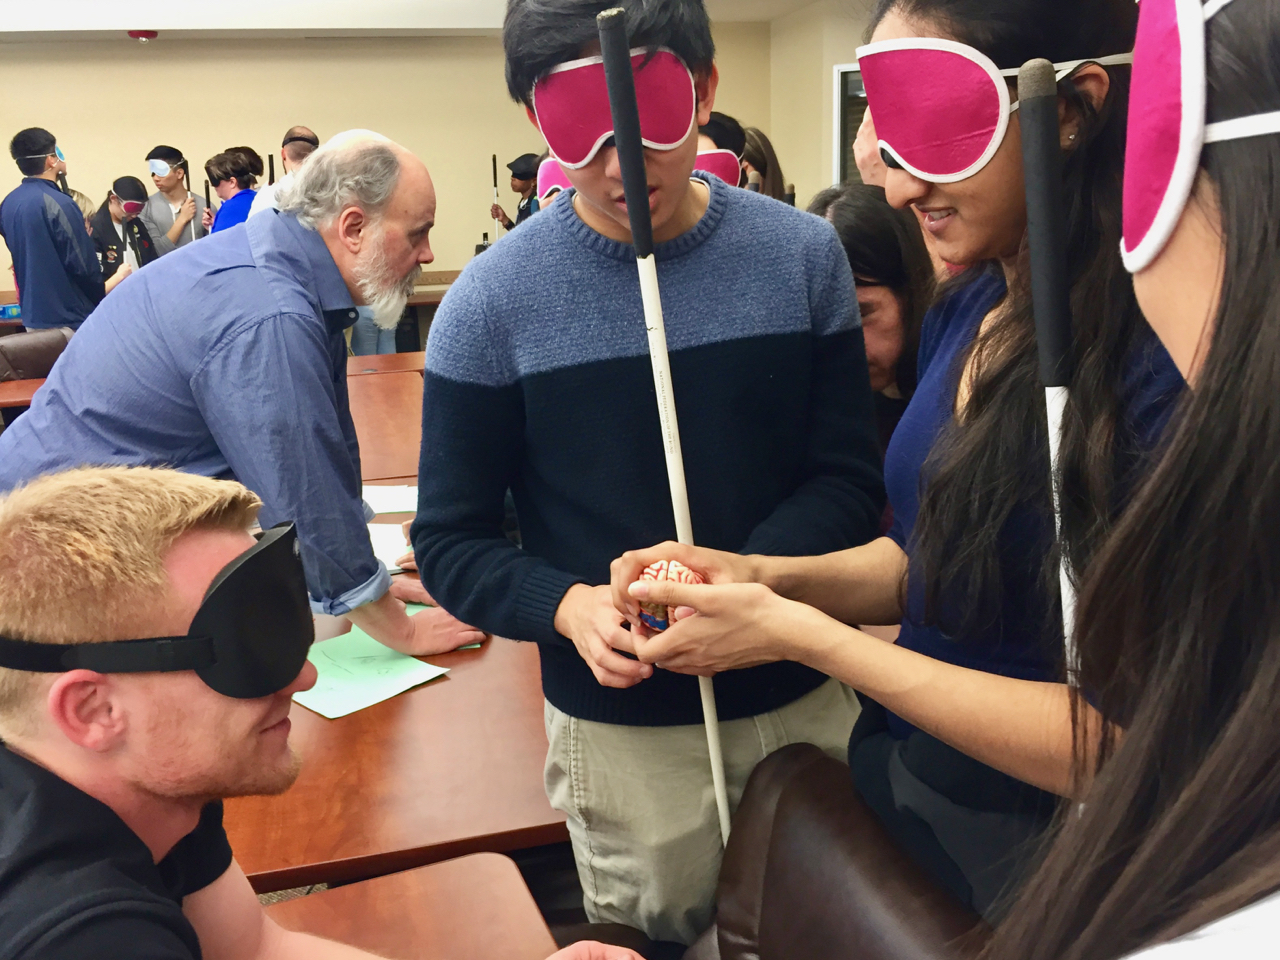 Students in sleepshades examine the mode of a brain on the table between them